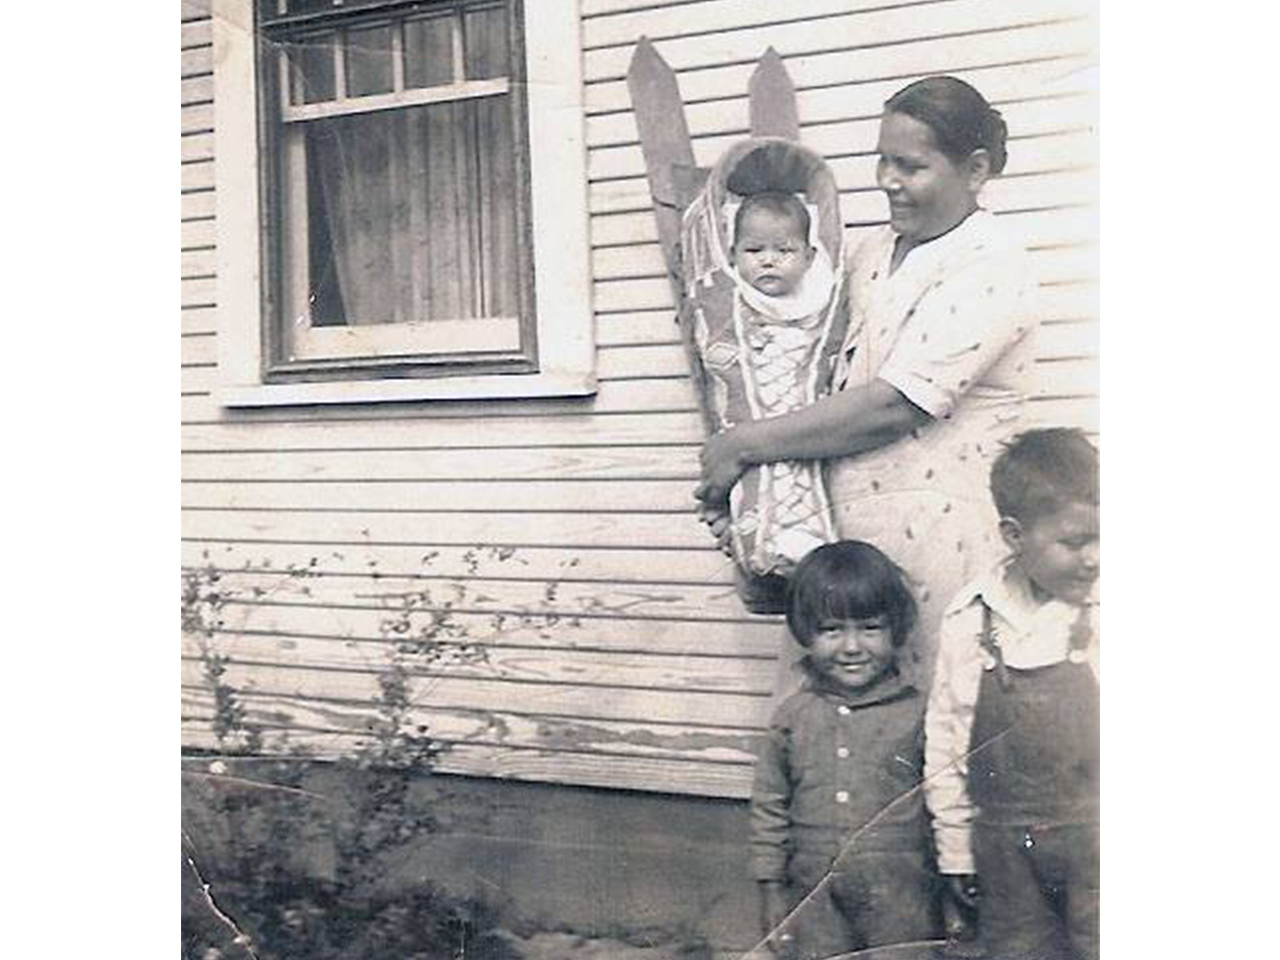 A black and white photo of a family smiling outside a house, with the baby wrapped in a cardleboard